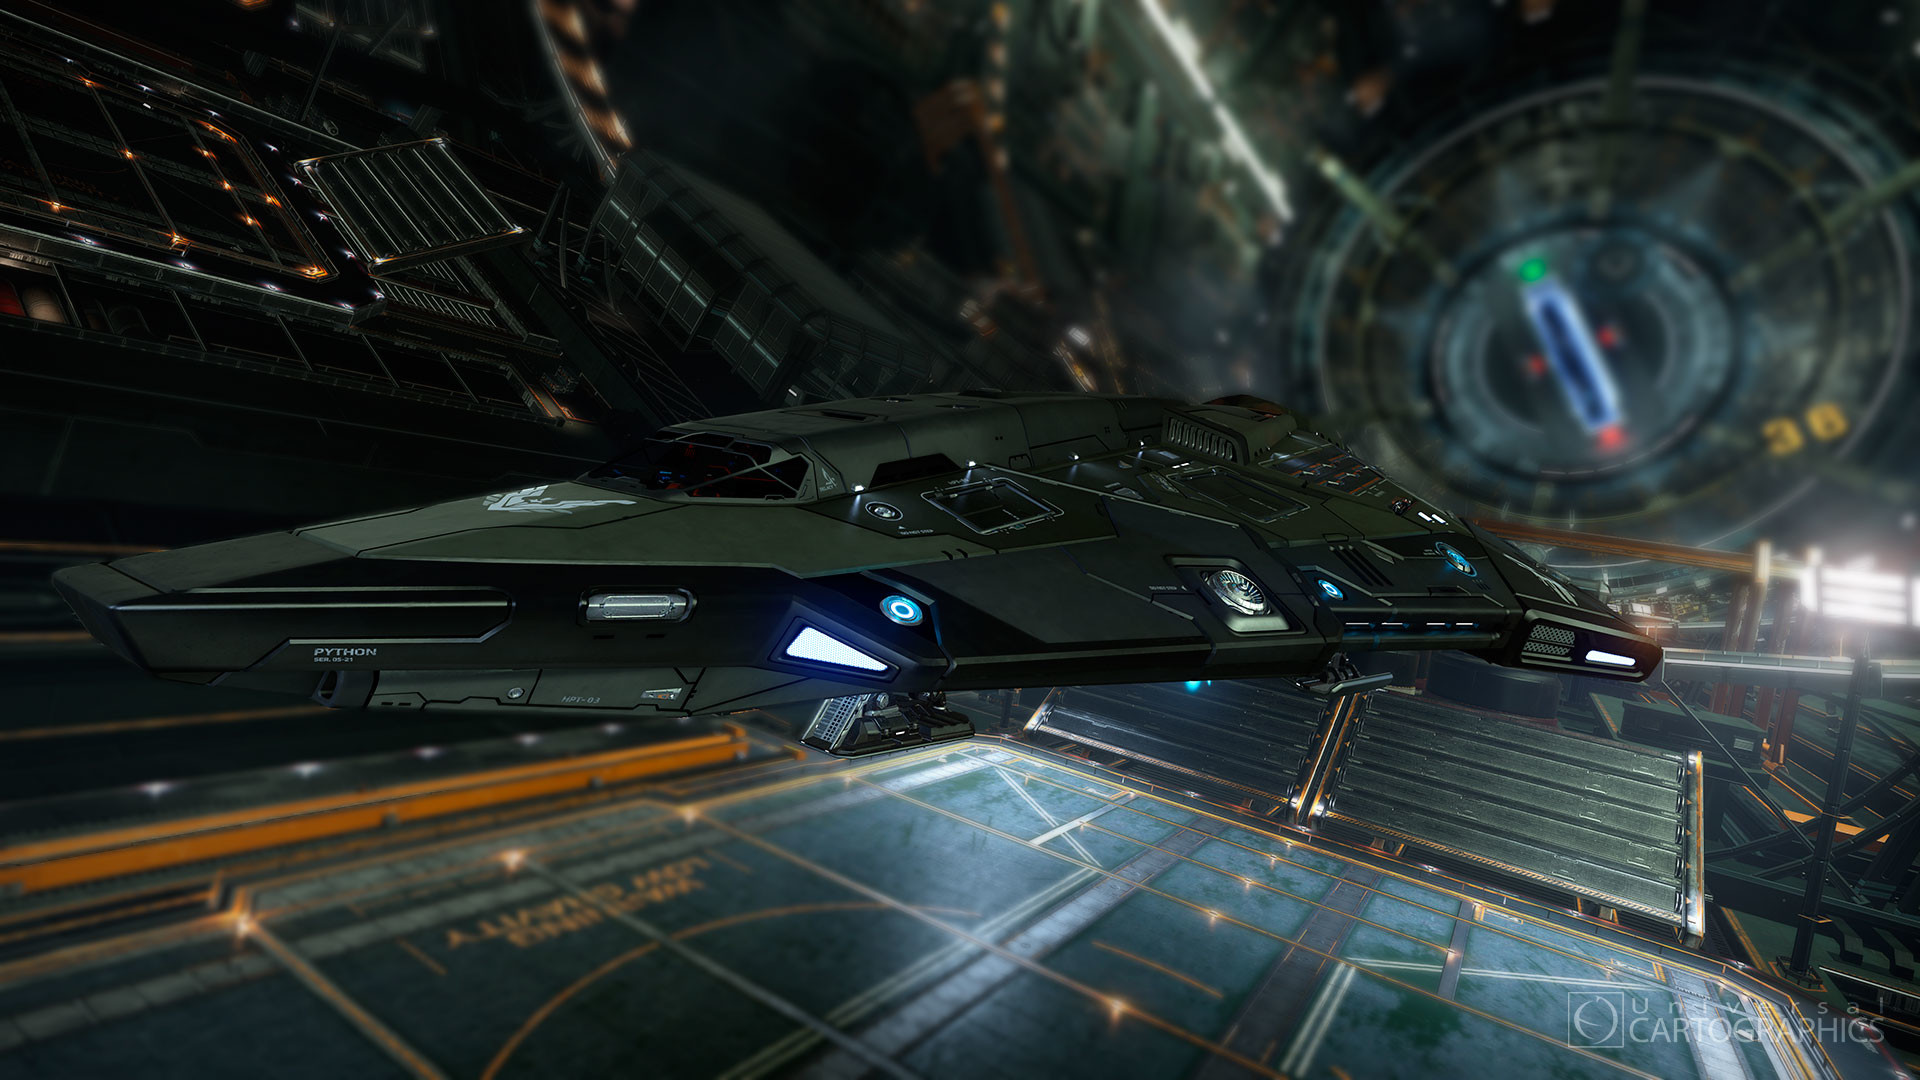 Elite Dangerous HD Wallpaper (72+ images)